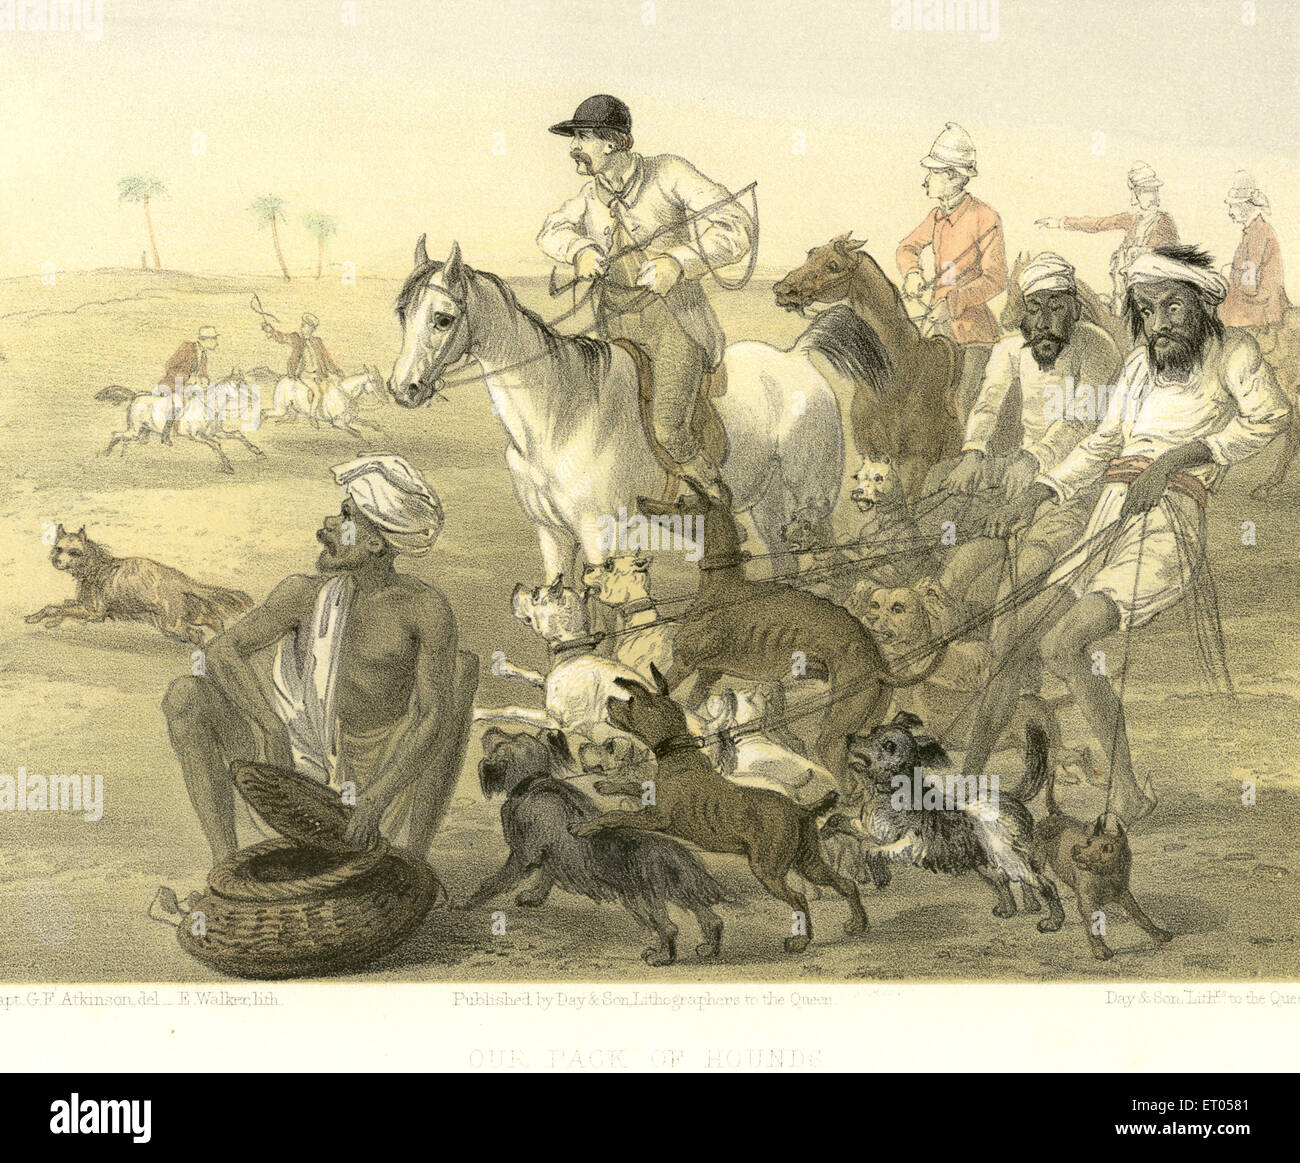 Colonial Indian images ; our pack of hounds ; India - Stock Image